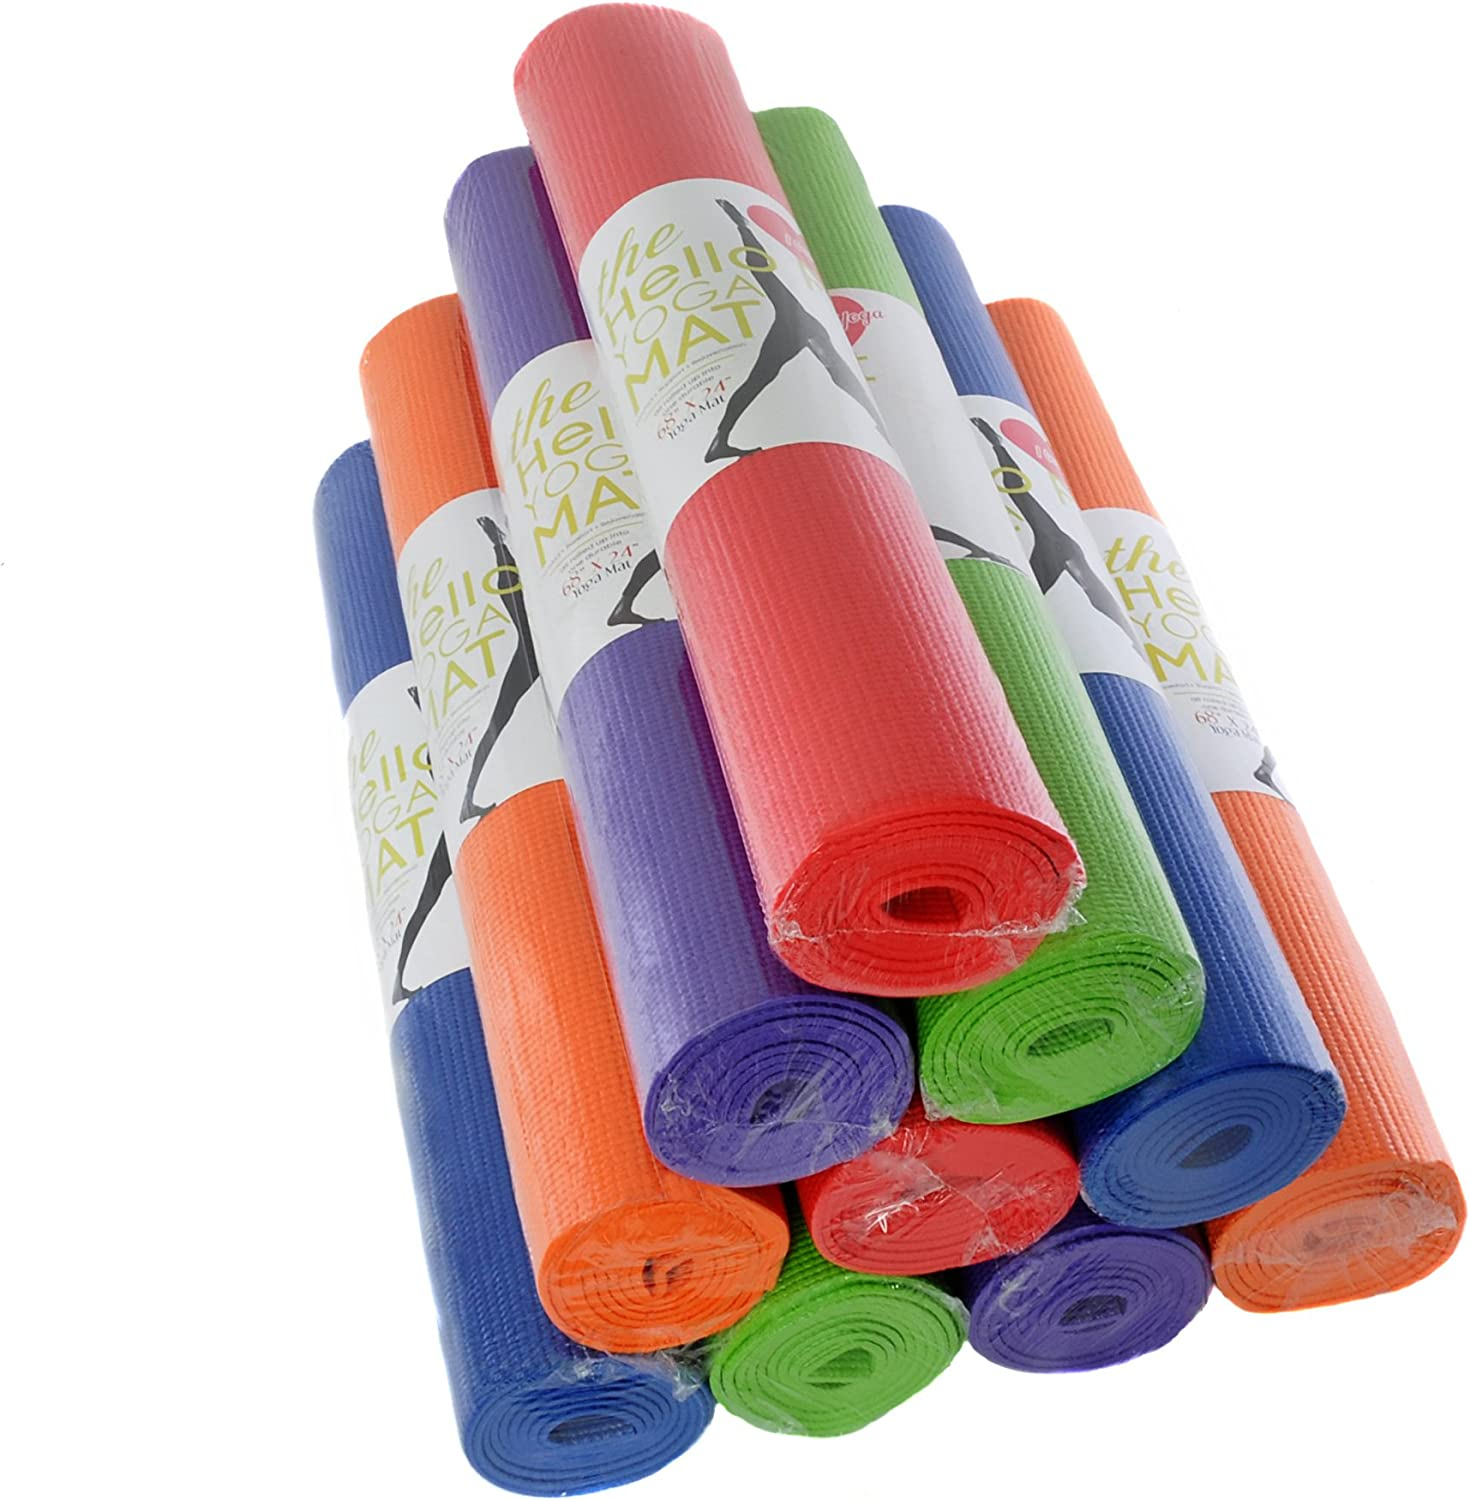 Hello Fit - Kid-Friendly Yoga Mats - Economical 10-Pack - Latex, Heavy Metal and 6P-Free - Non-Slip - Moisture Resistant